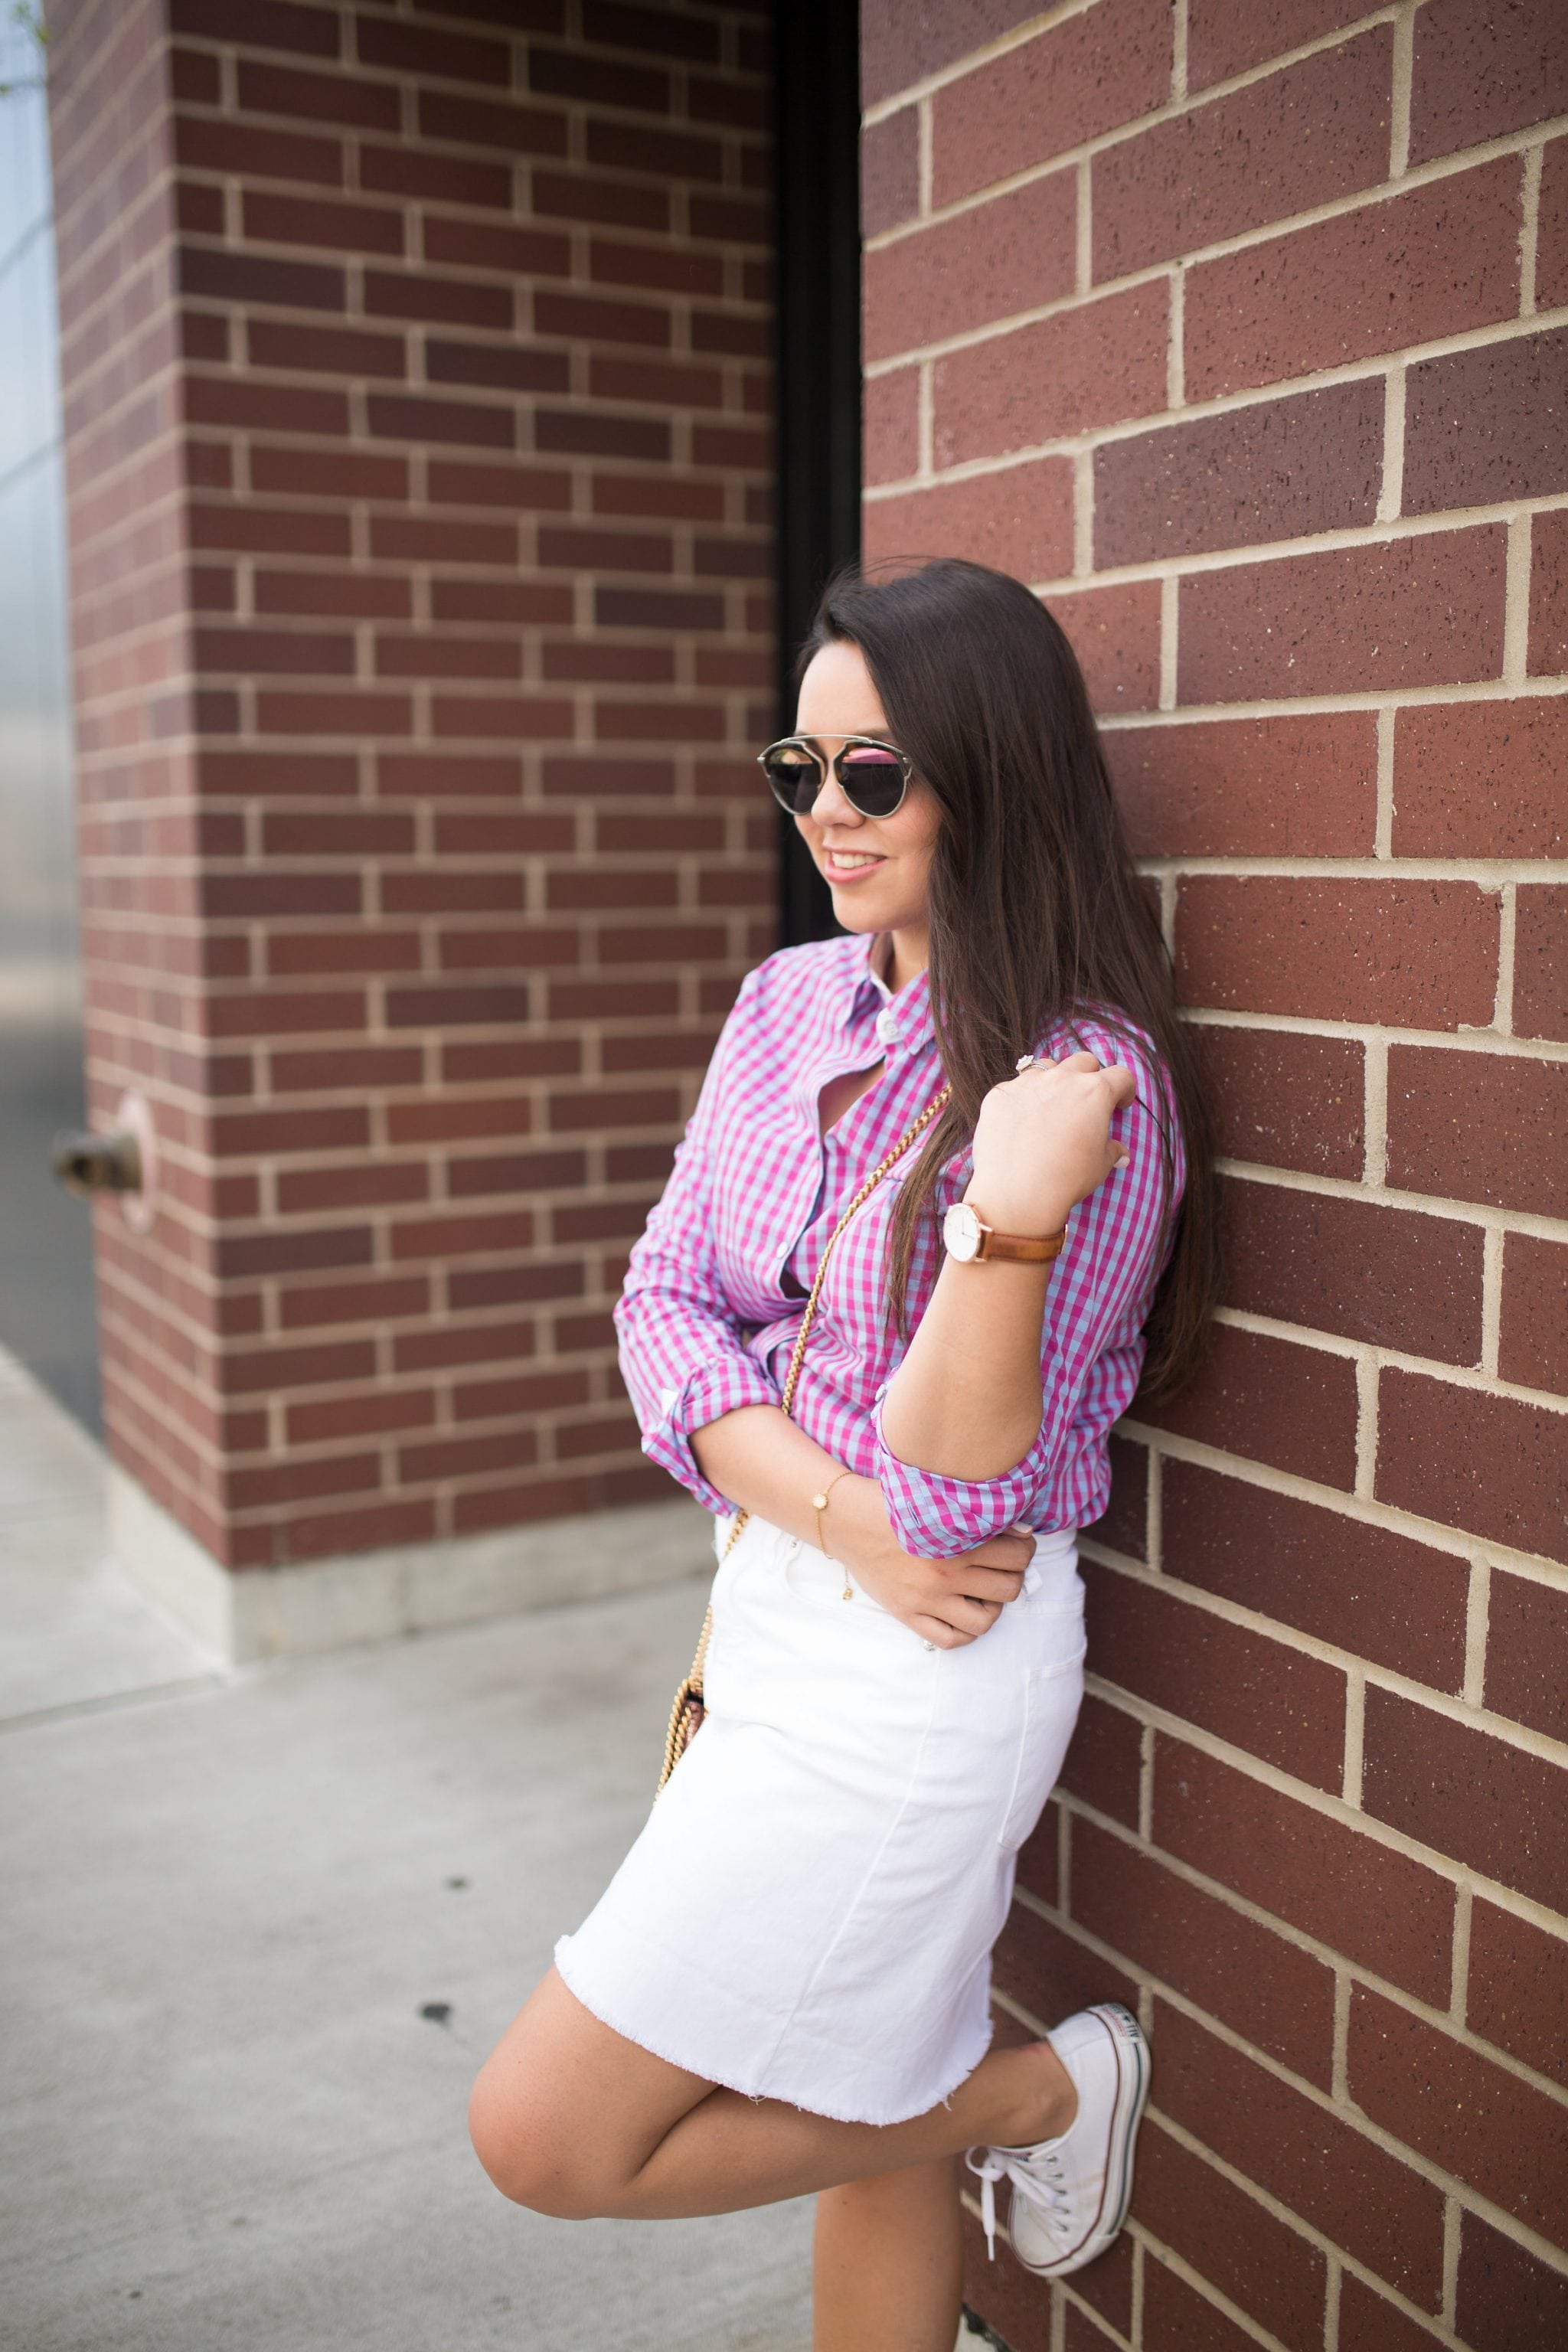 Gingham button down shirt outfit idea